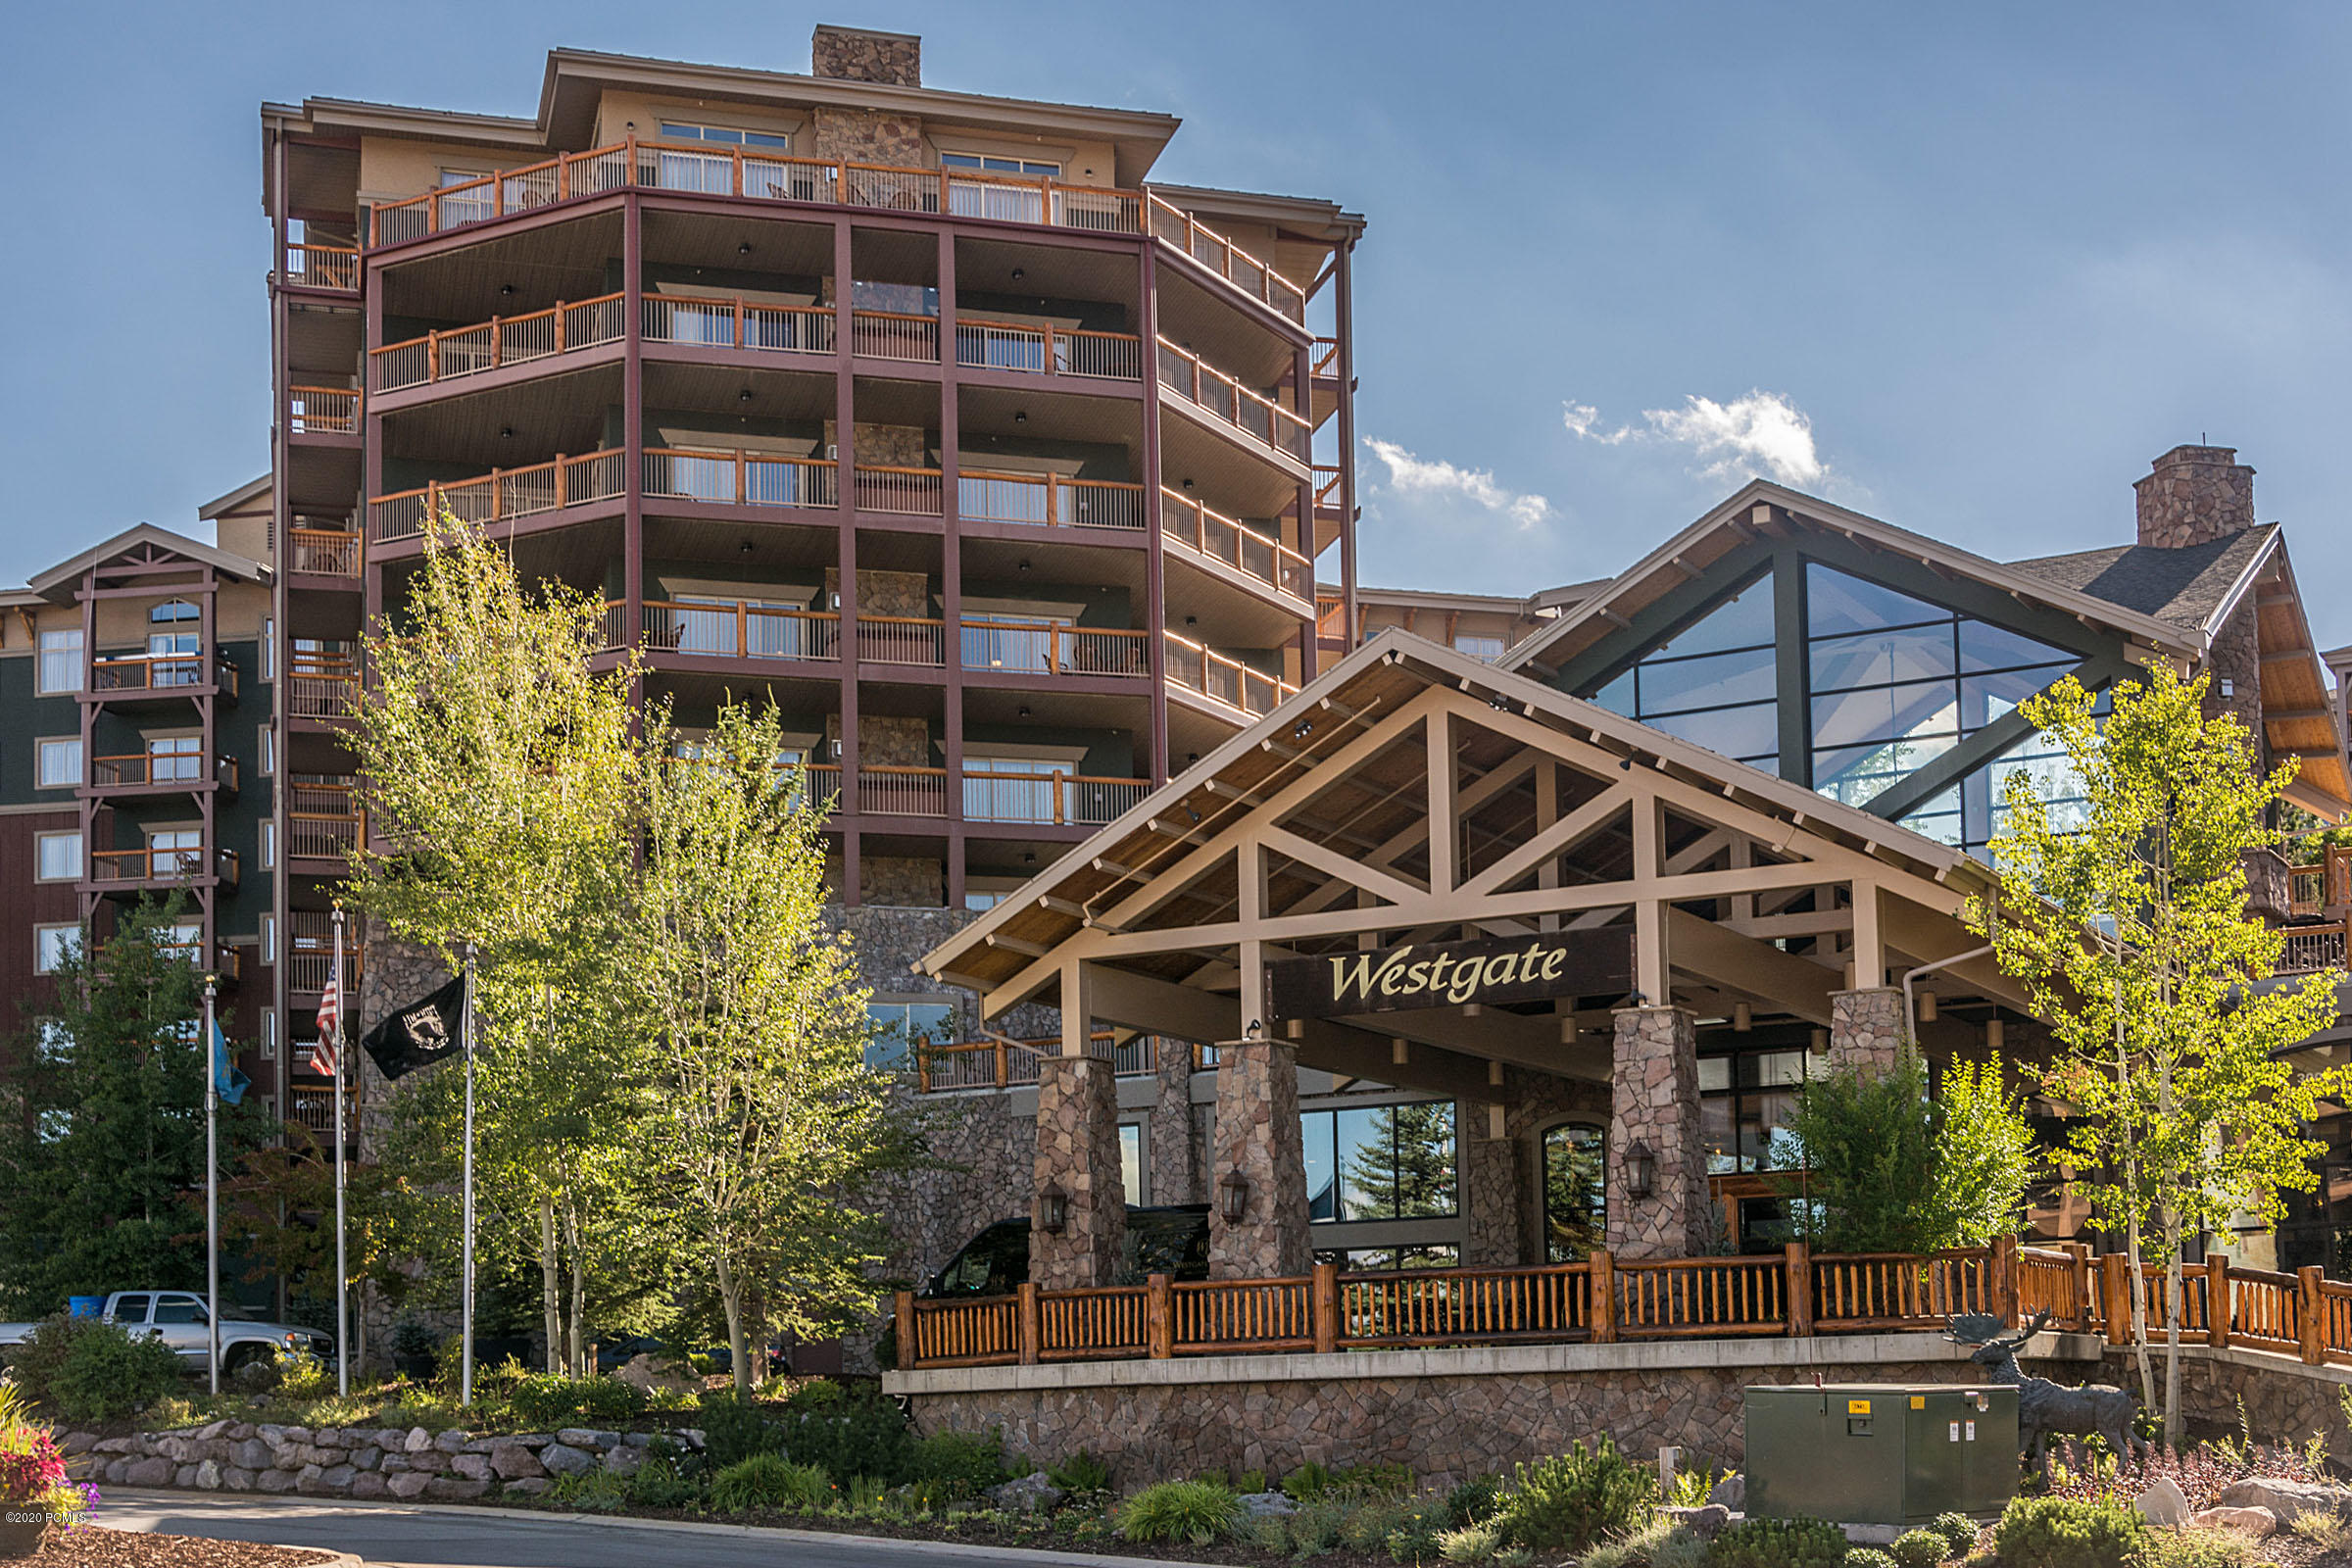 3000 Canyons Resort Drive, Park City, Utah 84098, 1 Bedroom Bedrooms, ,1 BathroomBathrooms,Condominium,For Sale,Canyons Resort,20190109112430415765000000